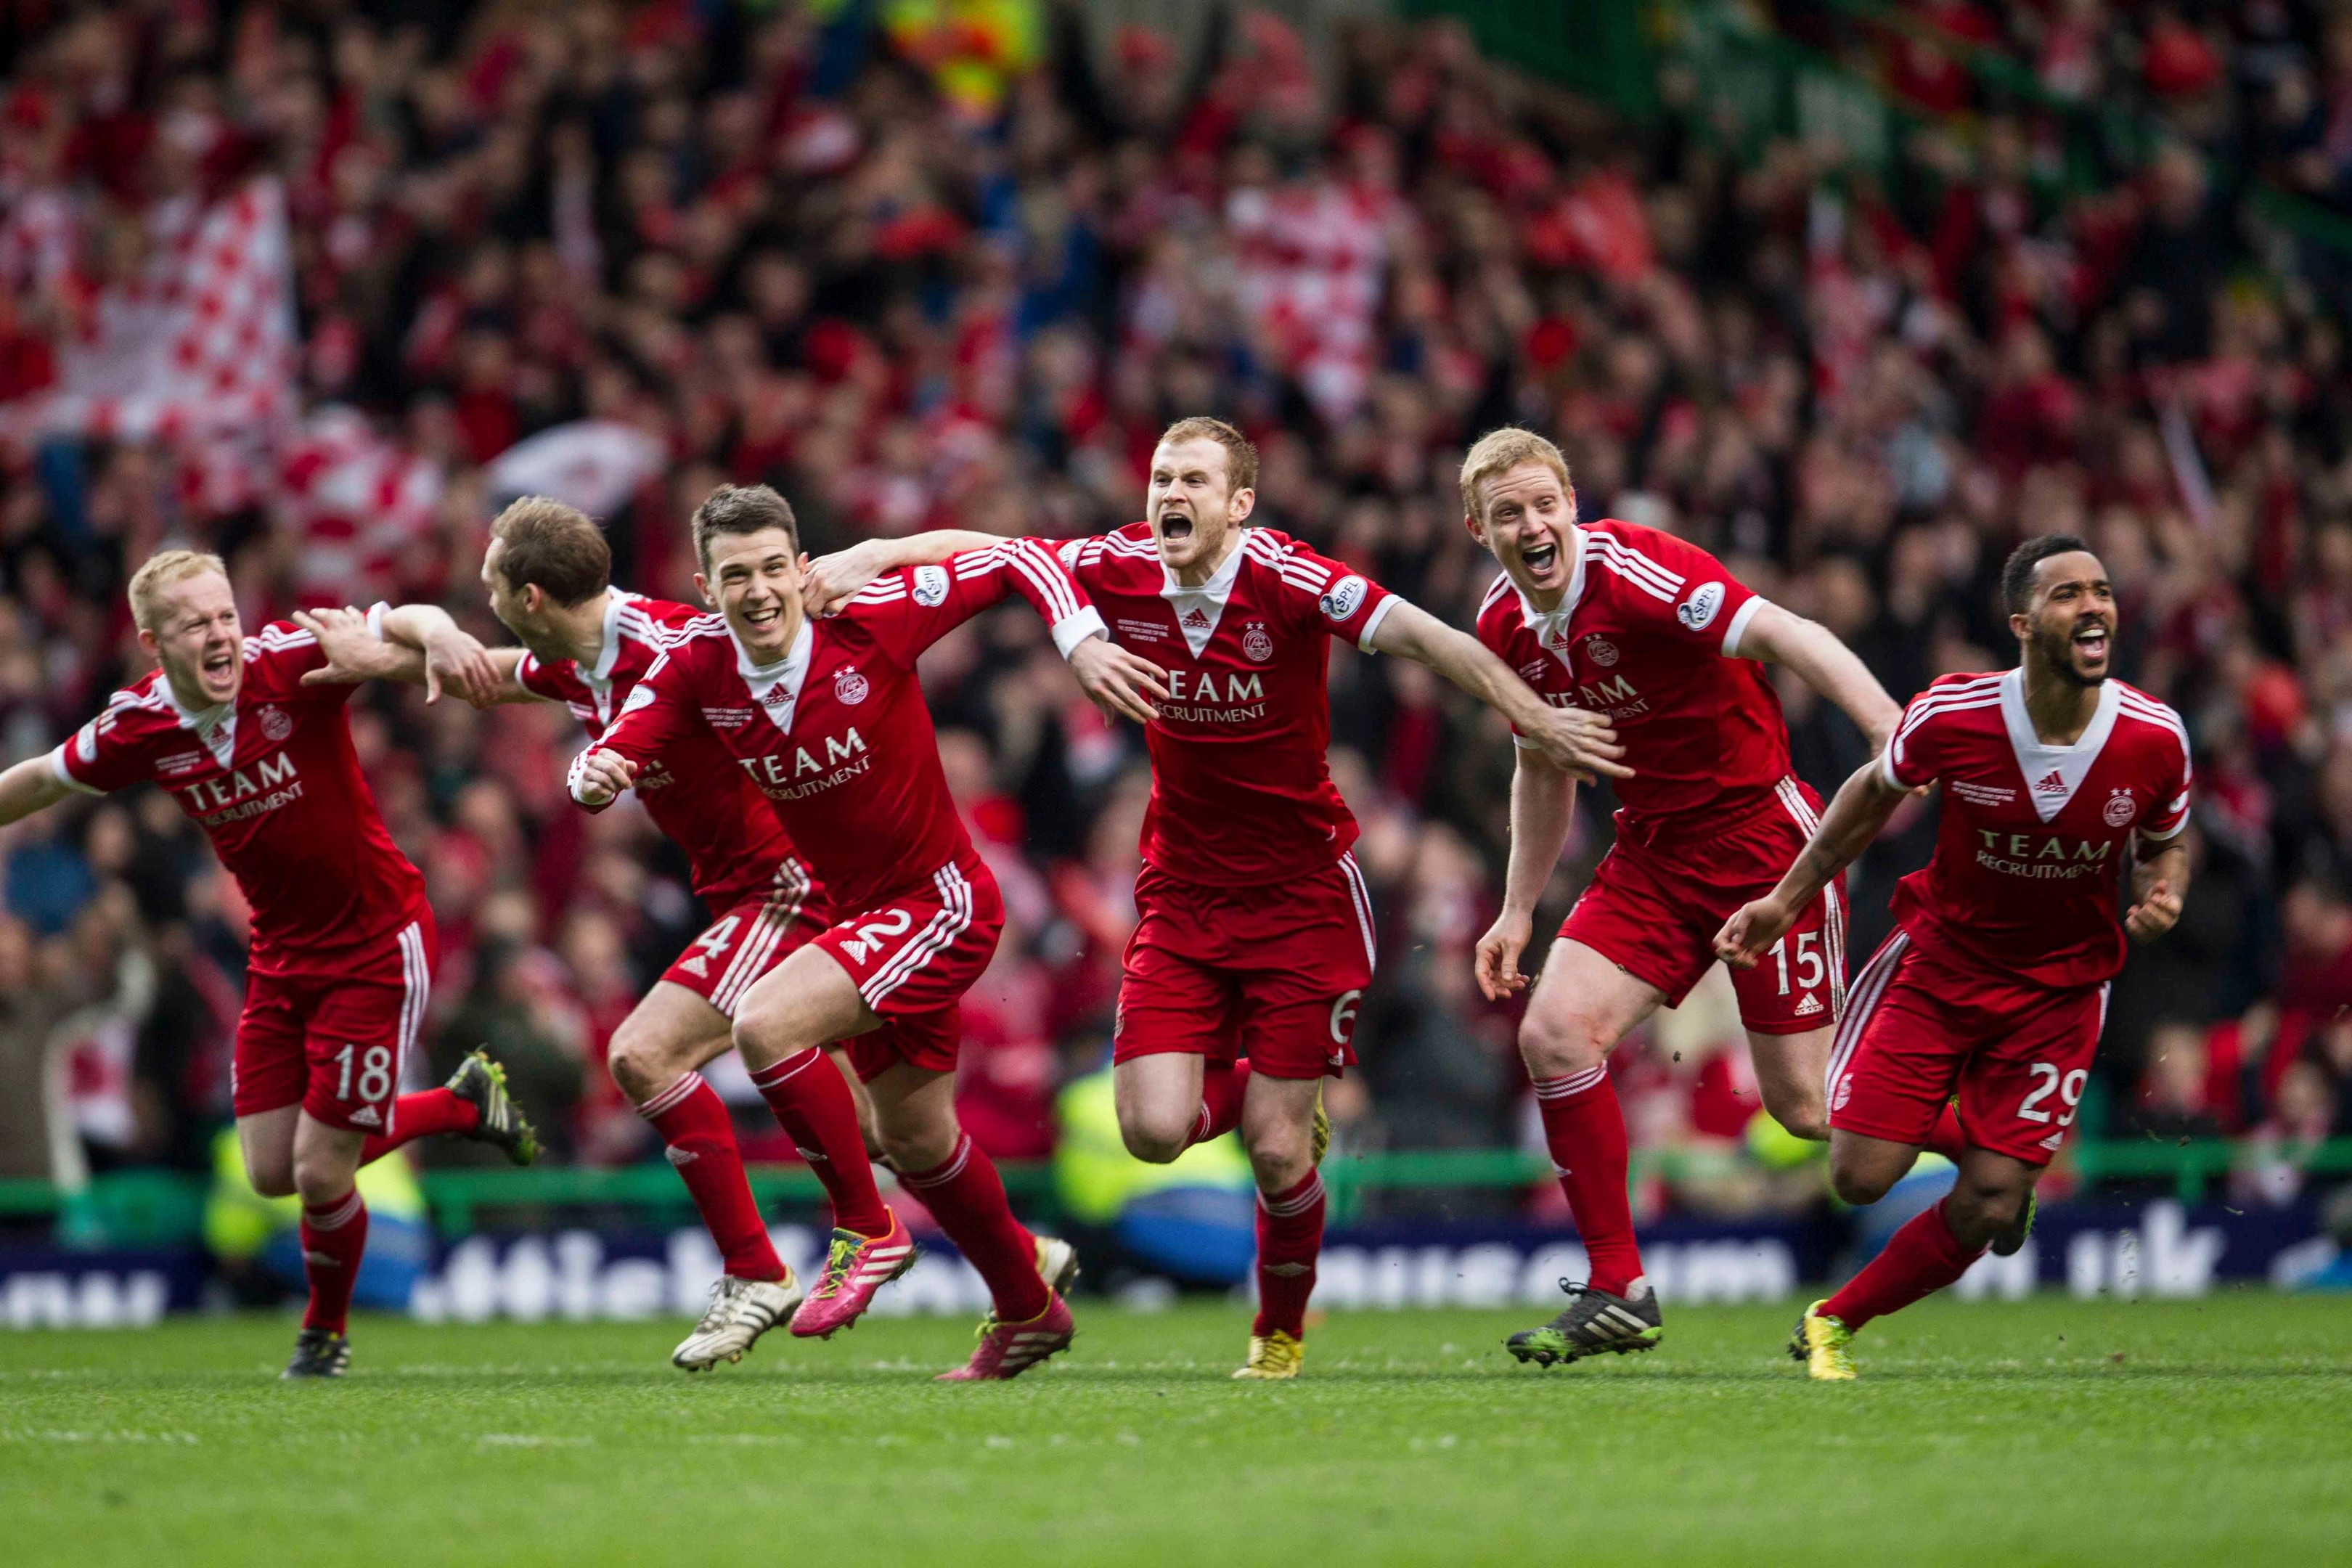 Barry Robson celebrates Aberdeen's League Cup win with his team-mates.